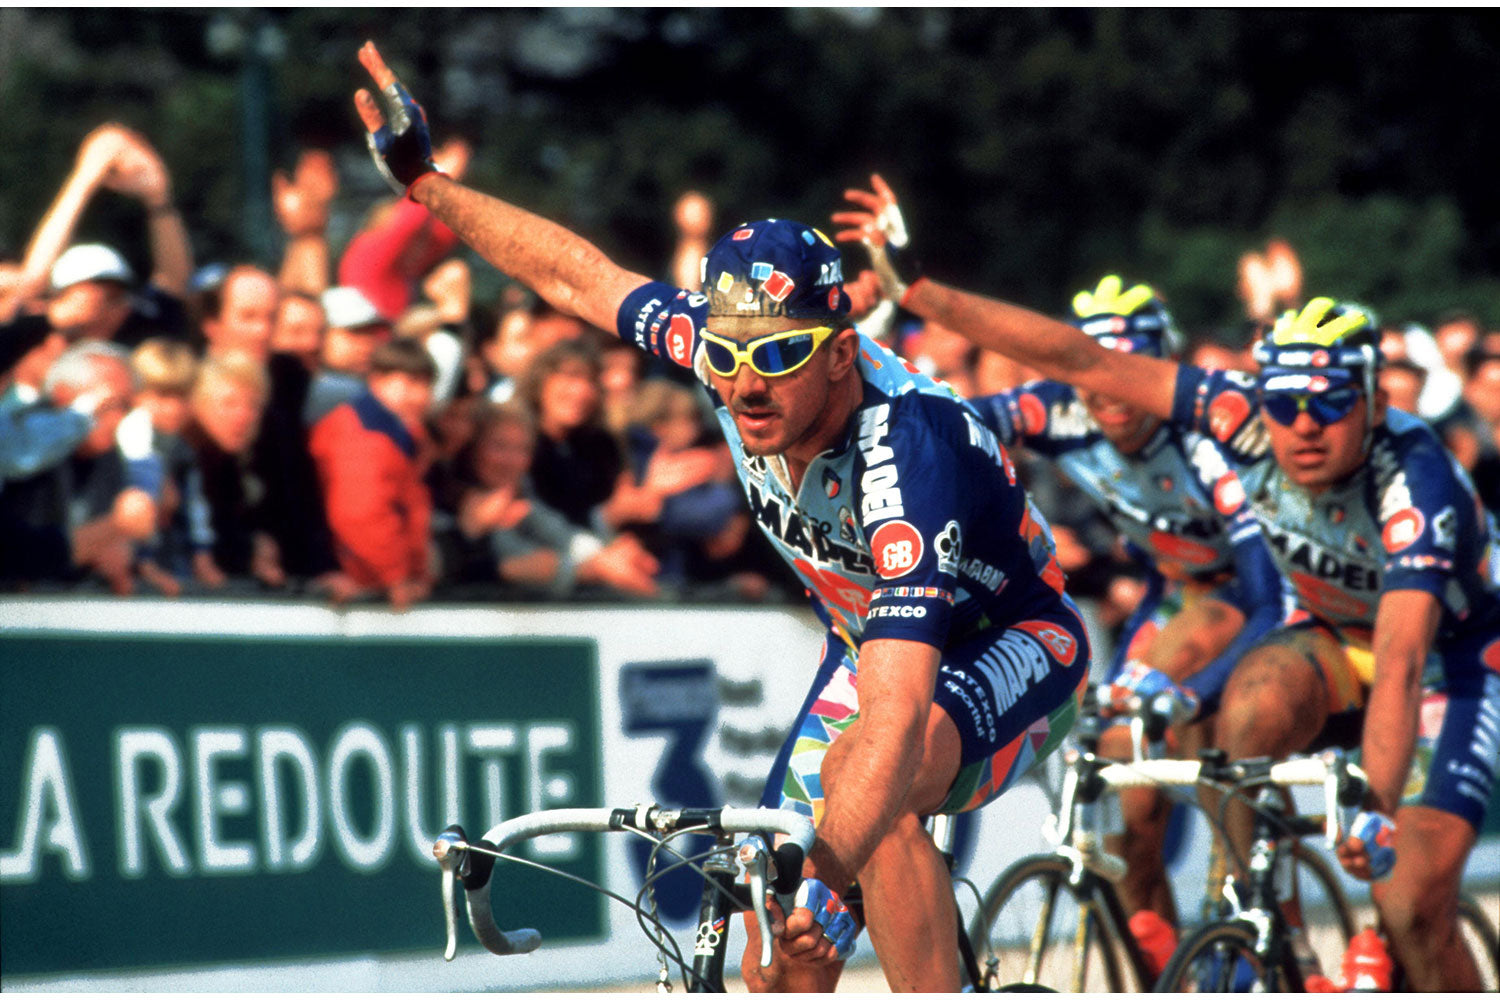 Paris - Roubaix 1996: Johan Museeuw taking the win ahead of teammates Gianluca Bortolami & Andrea Tafi to complete an all-MAPEI podium.